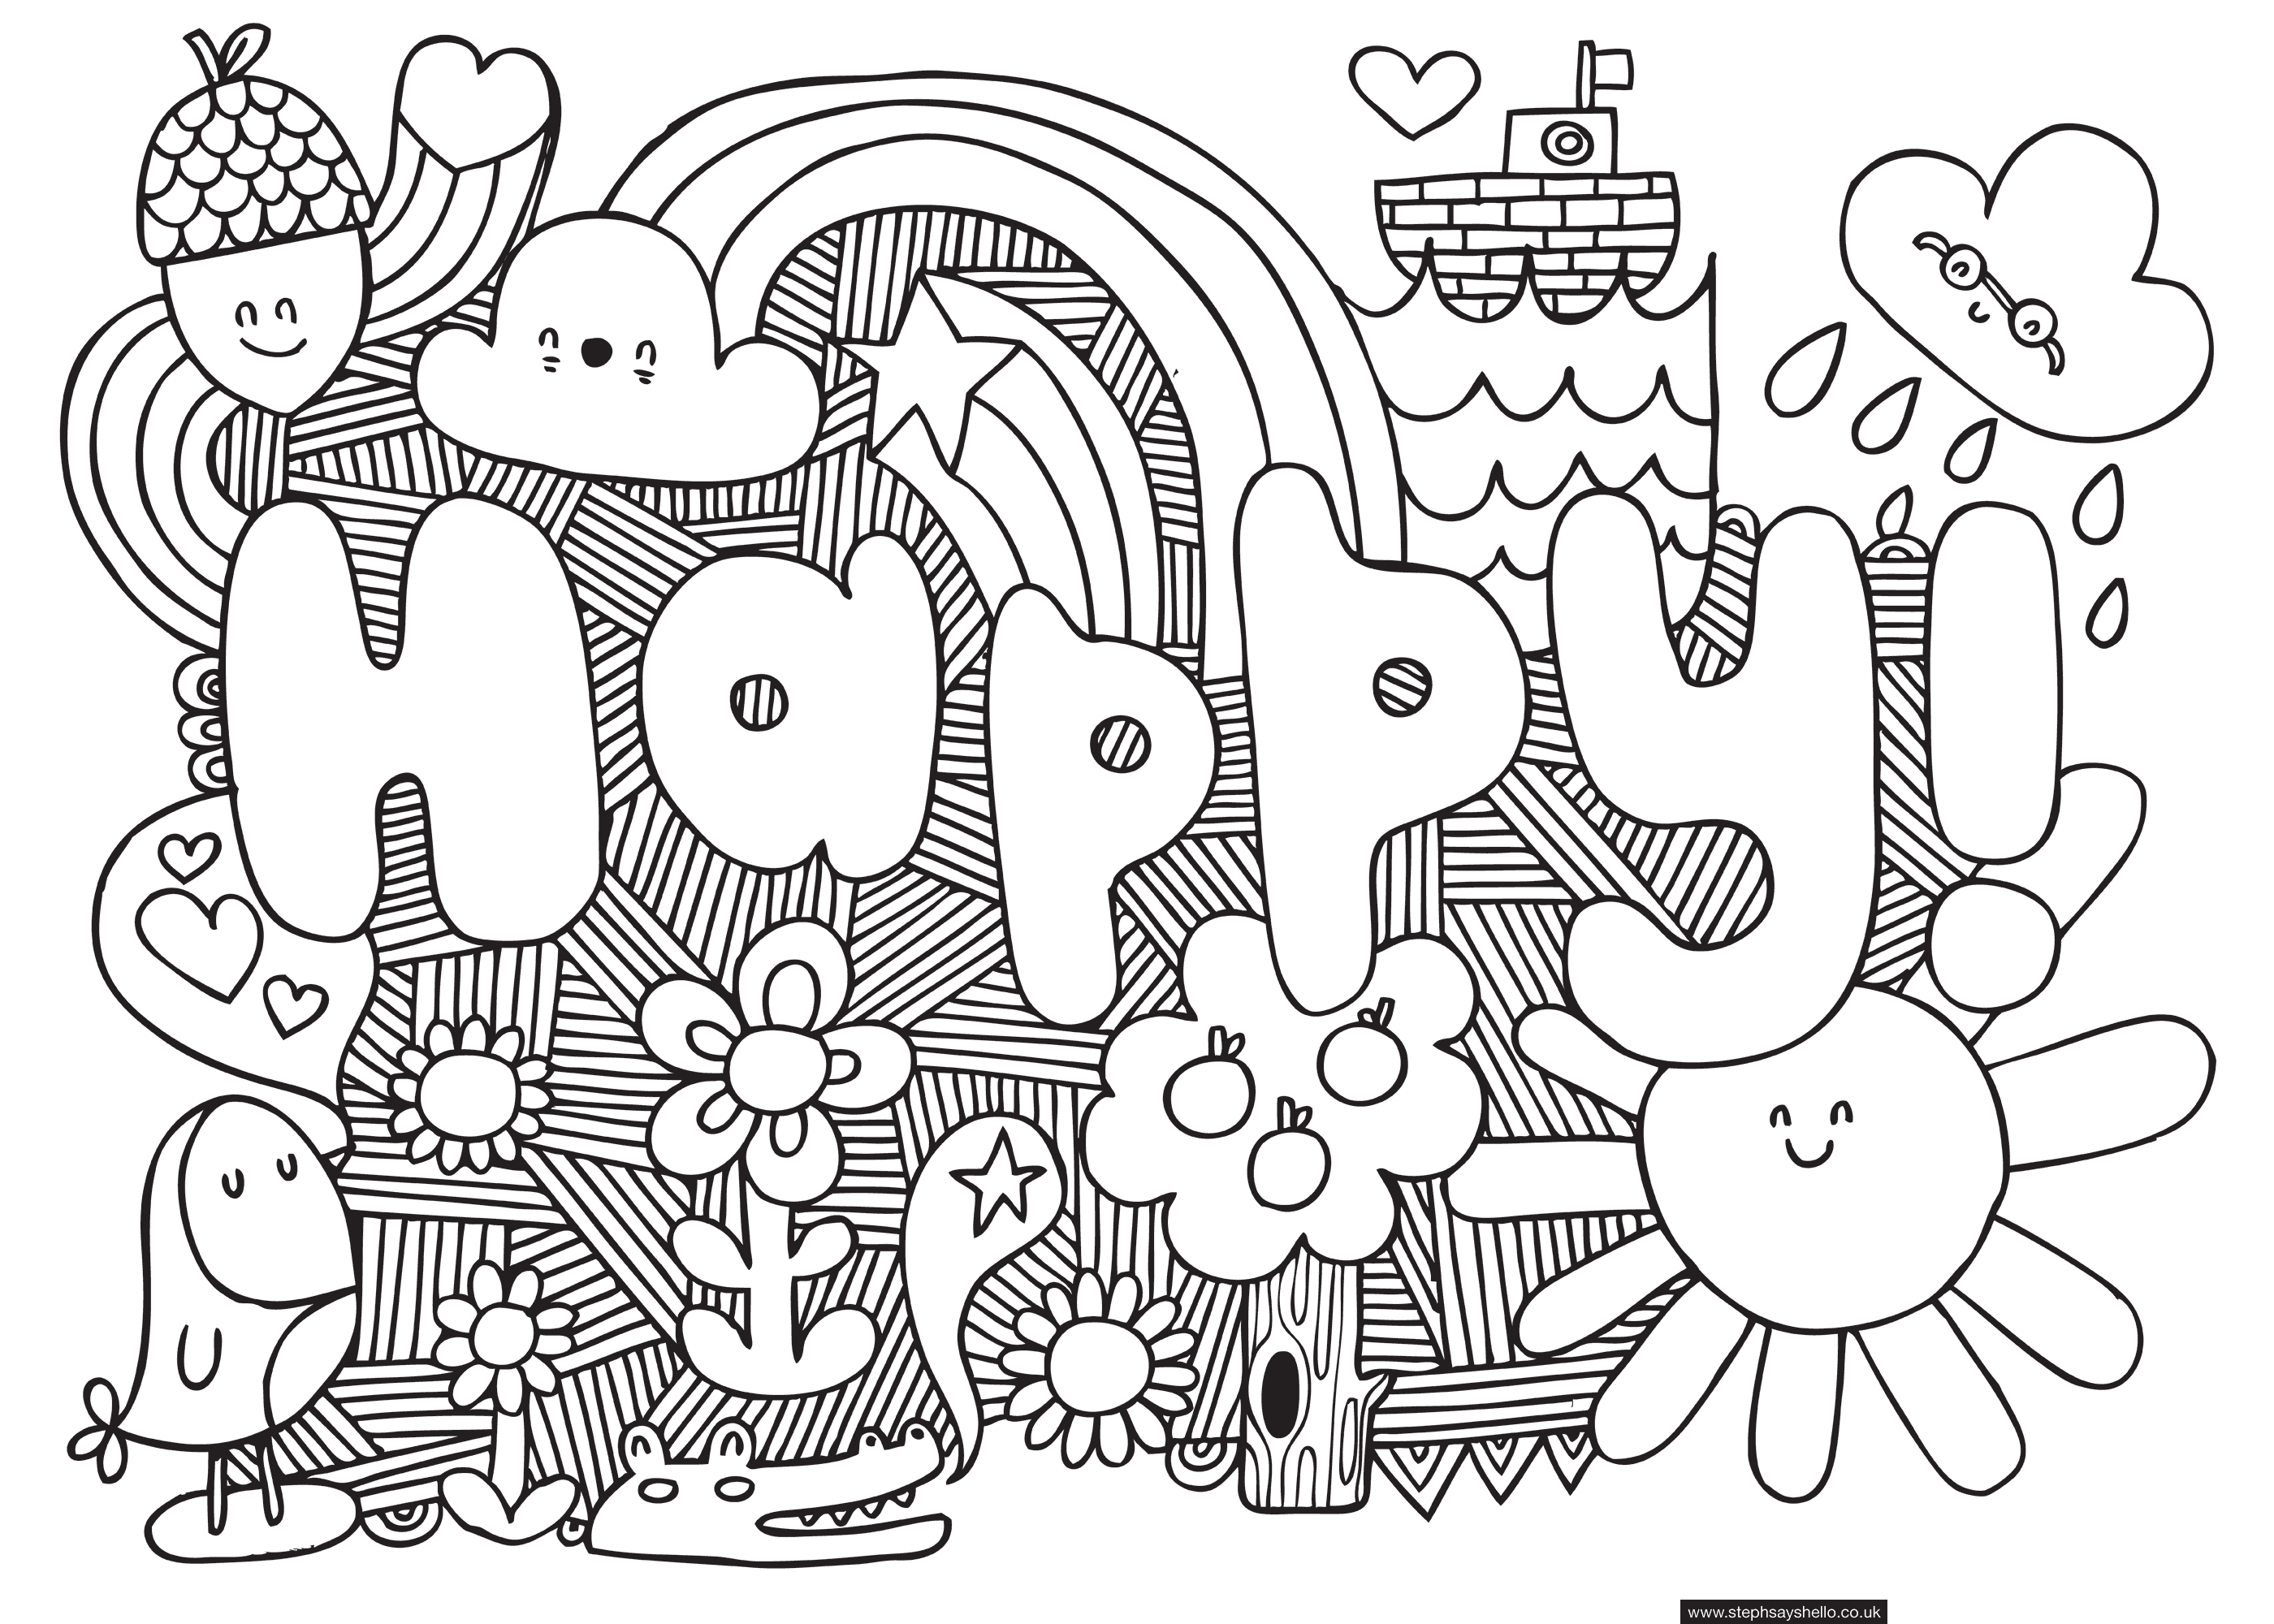 Book care coloring sheet - Bo Book Care Coloring Sheet Cool Coloring Pages Sorry It Is So Convoluted To Find The Link To The Patterns Through